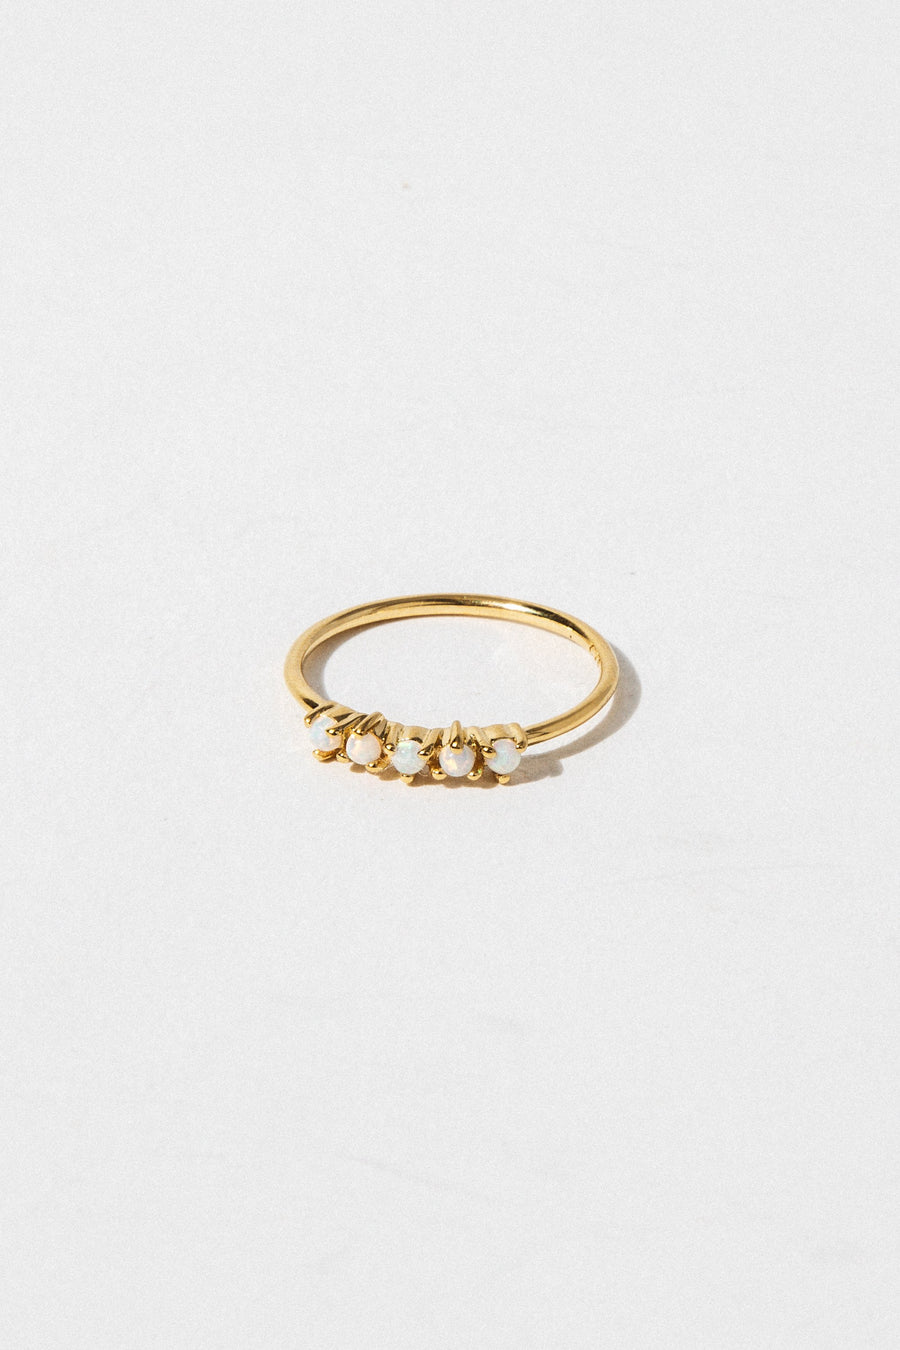 LA KAISER Jewelry Quin Ring